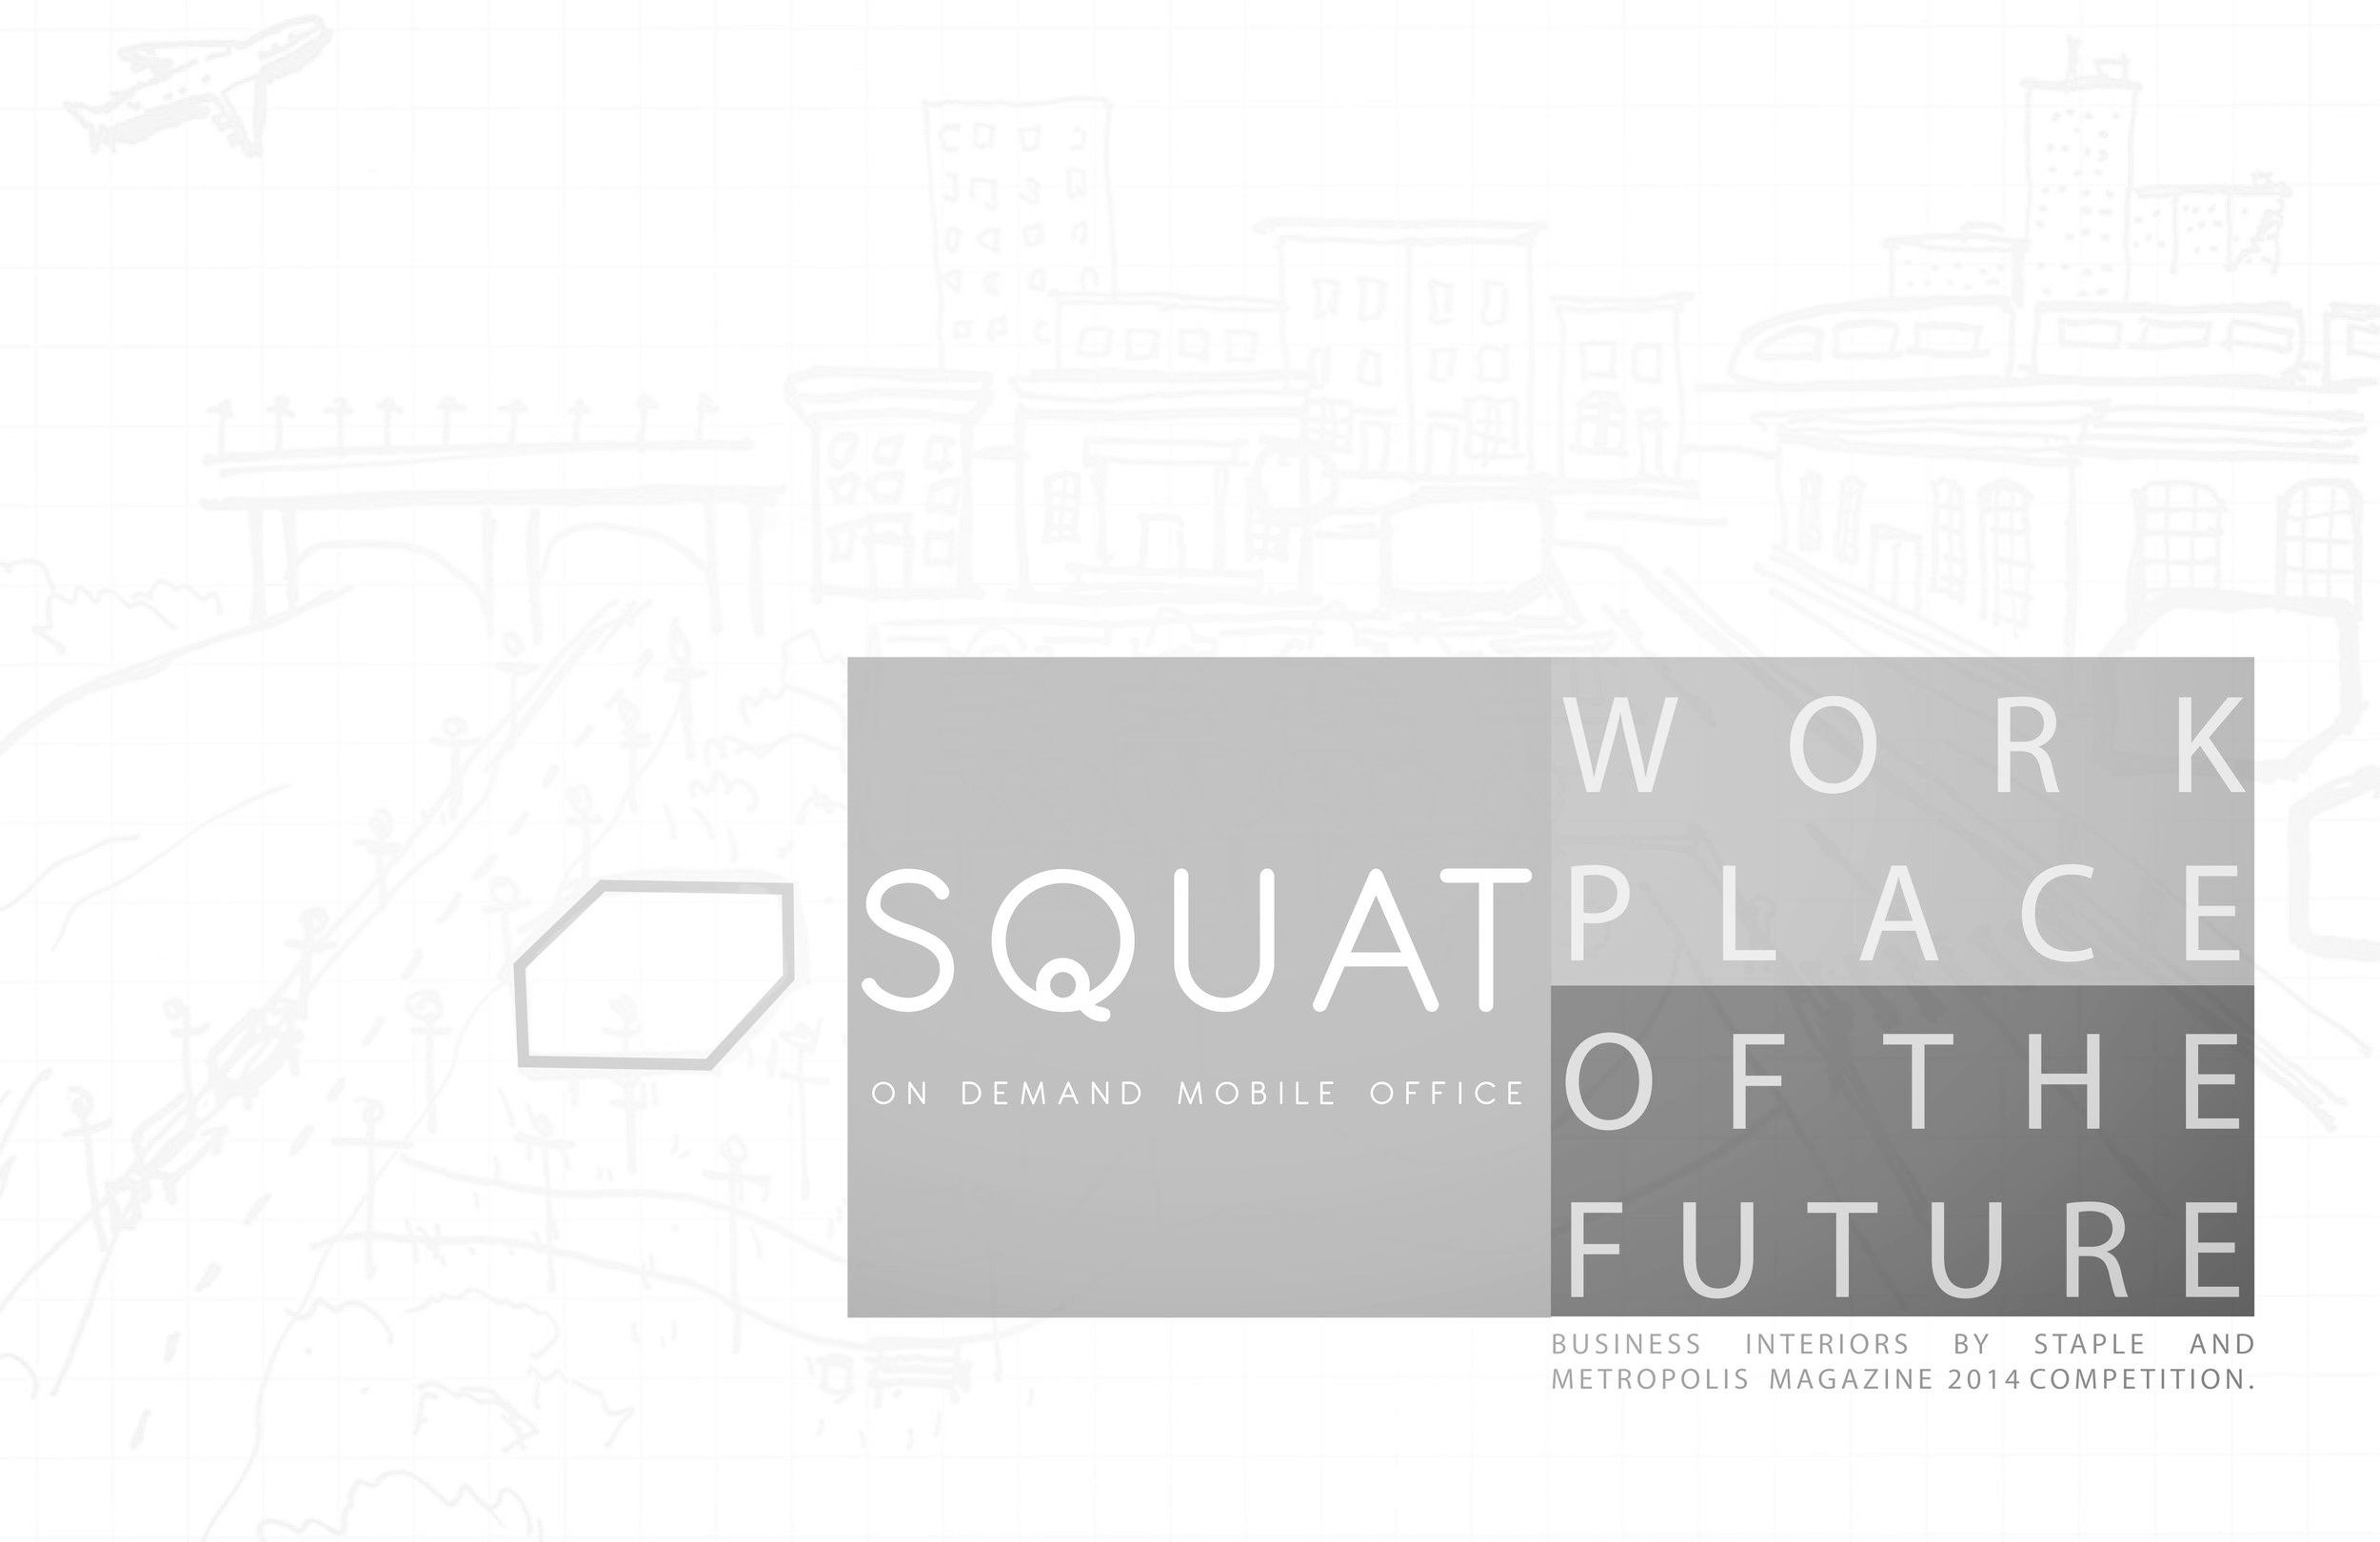 SQUAT - Workplace of the Future. More..